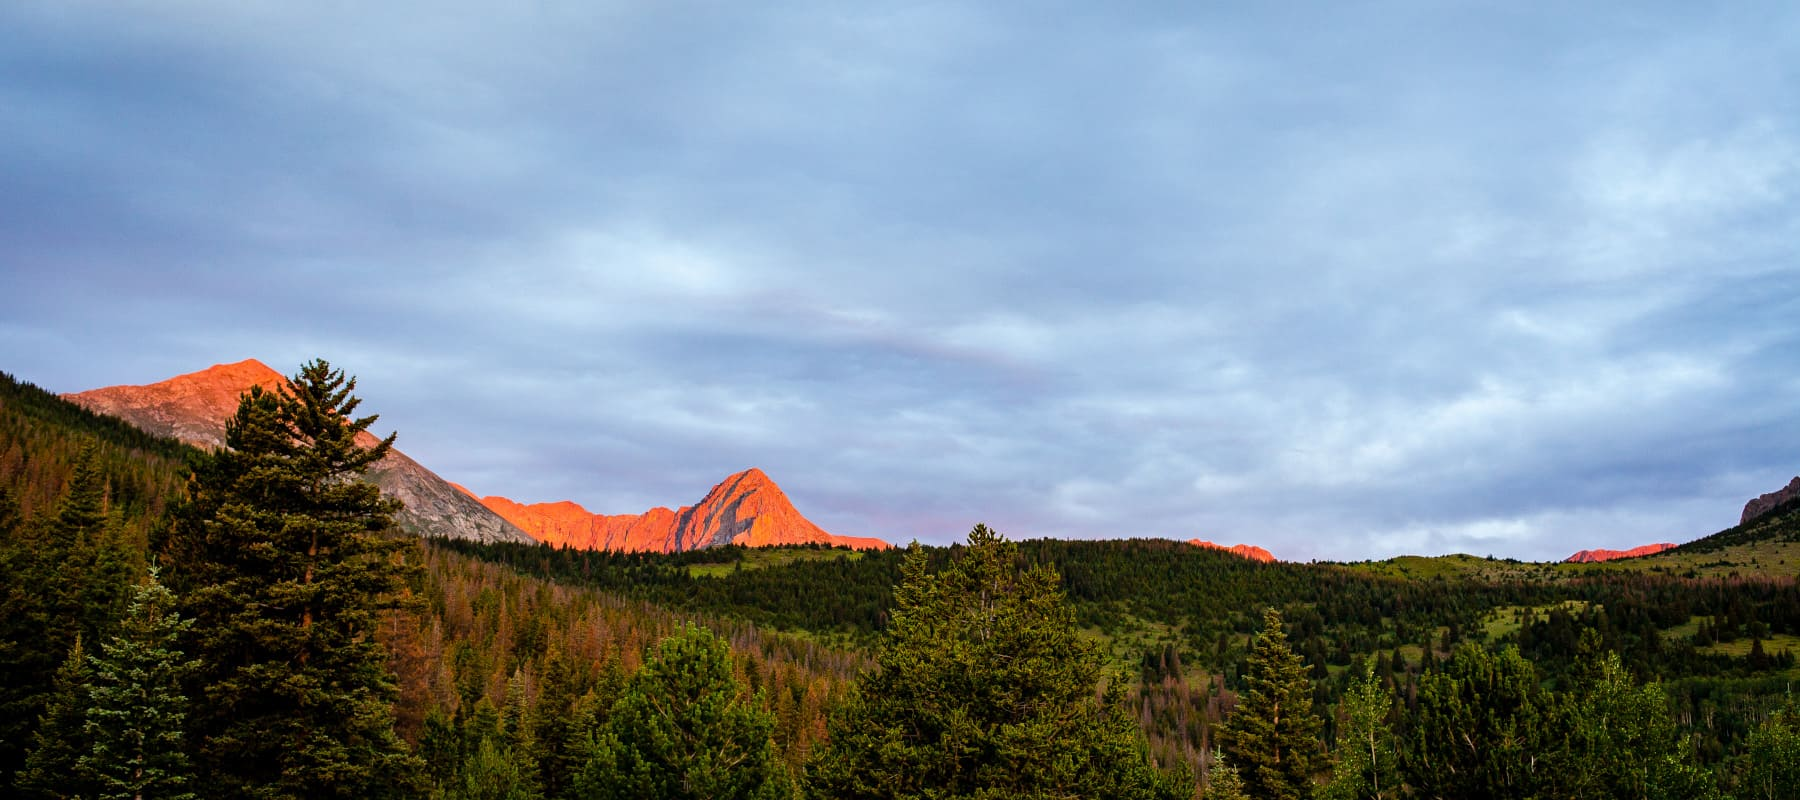 The mountains of Colorado that surround Black Hawk at Sunrise are Stunning